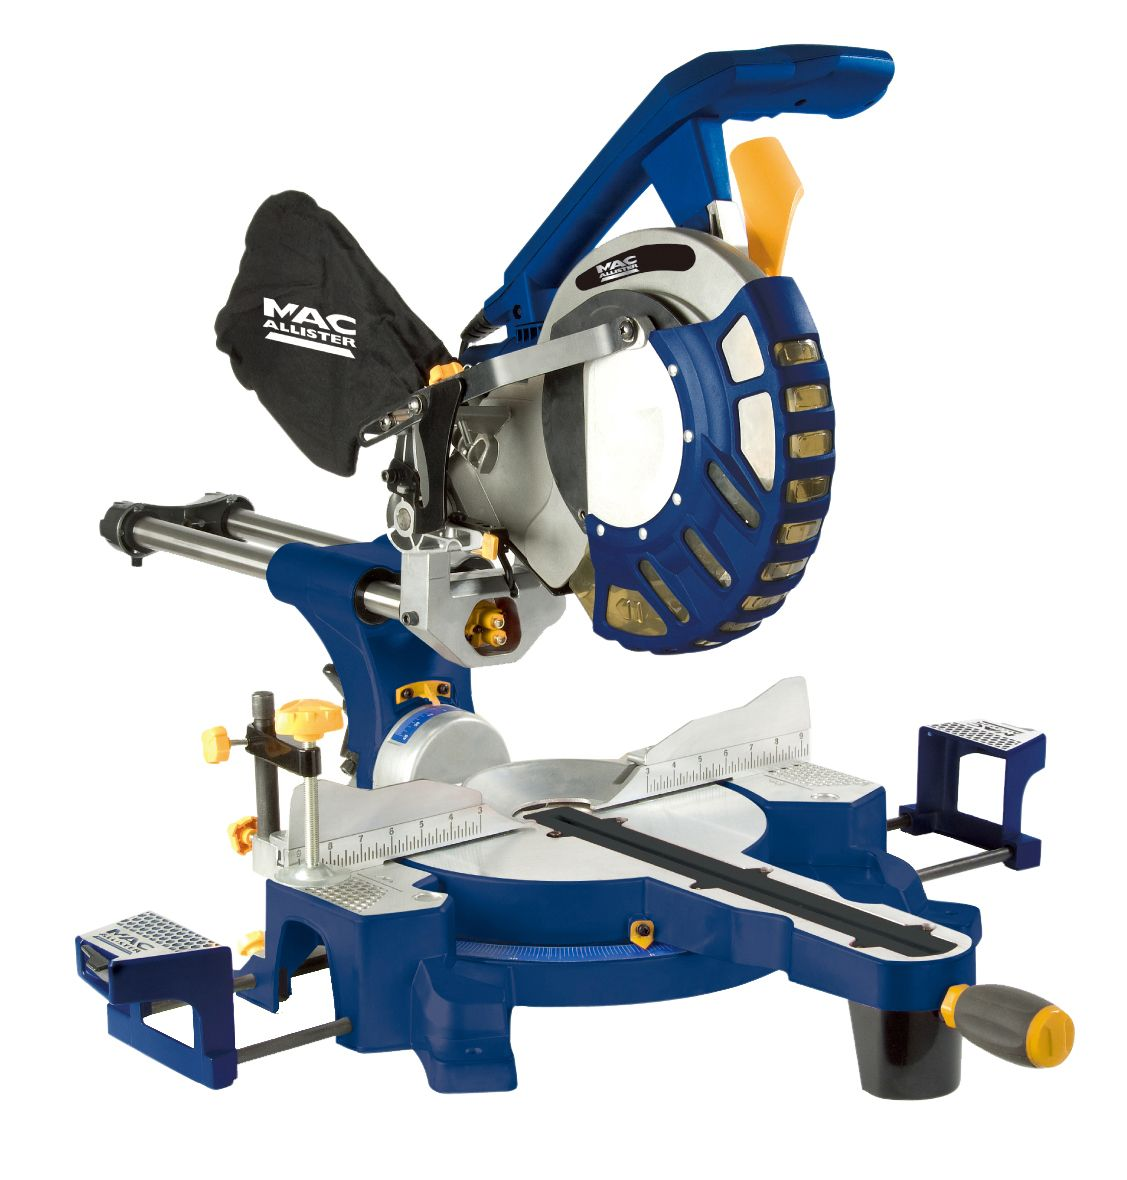 Mac Allister 1800w 240v 255mm Compound Mitre Saw Mms254sl Departments Diy At B Q